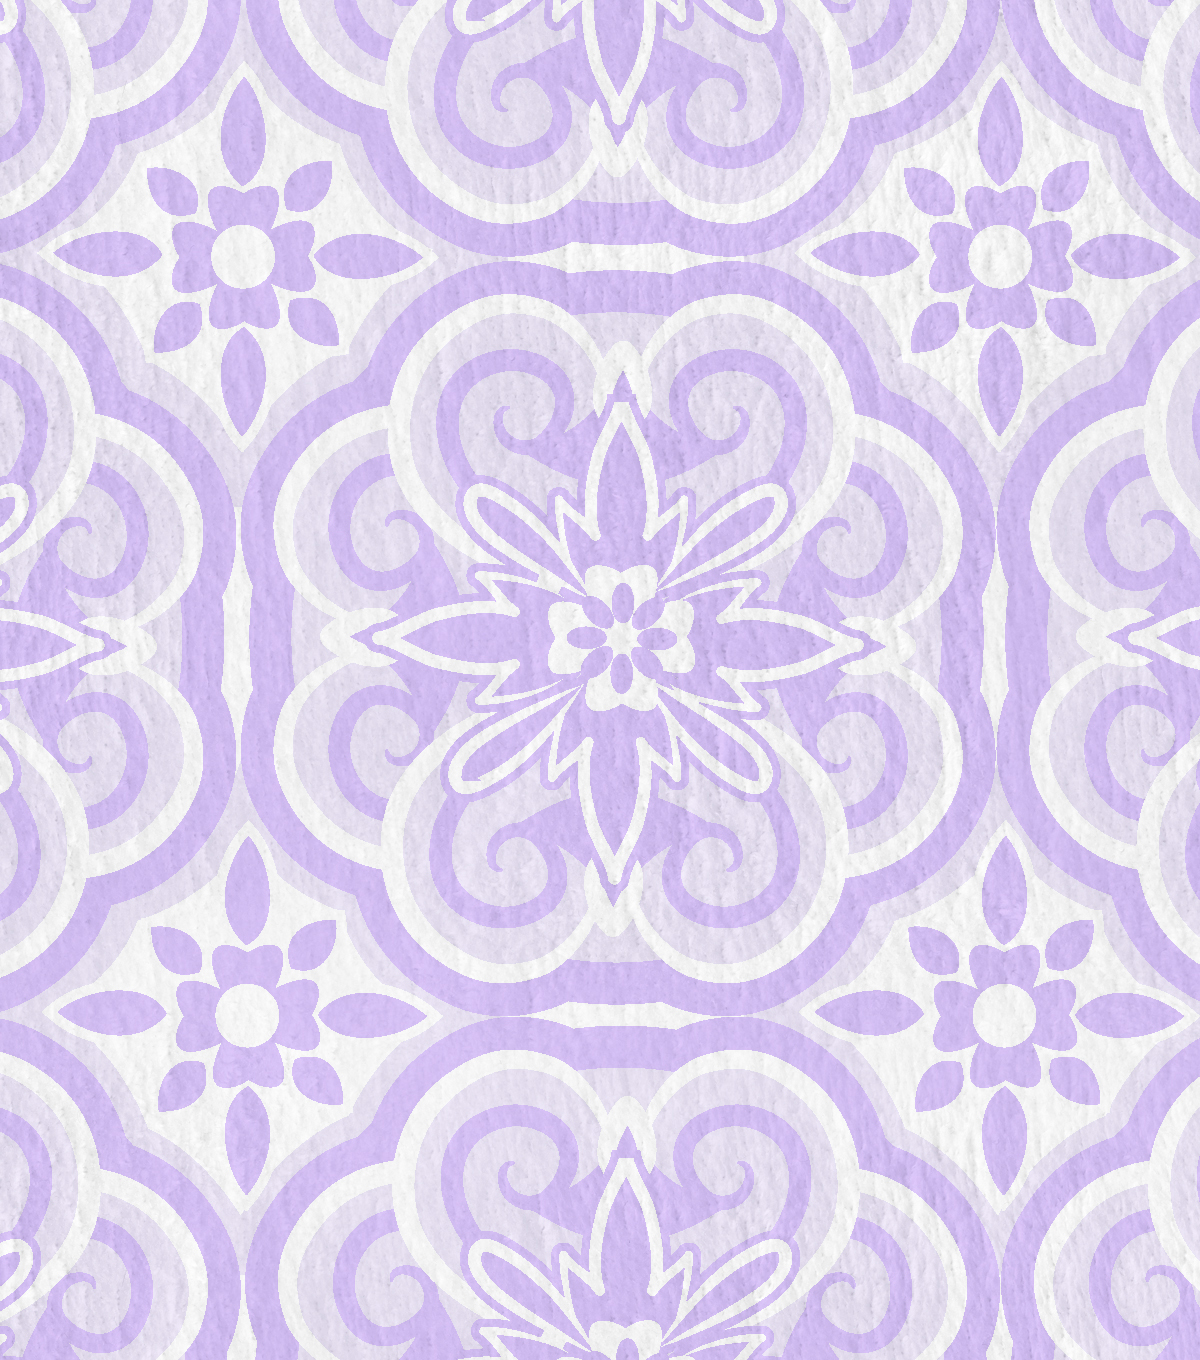 Nursery Flannel Fabric -Floral Medallion Lush Lavender